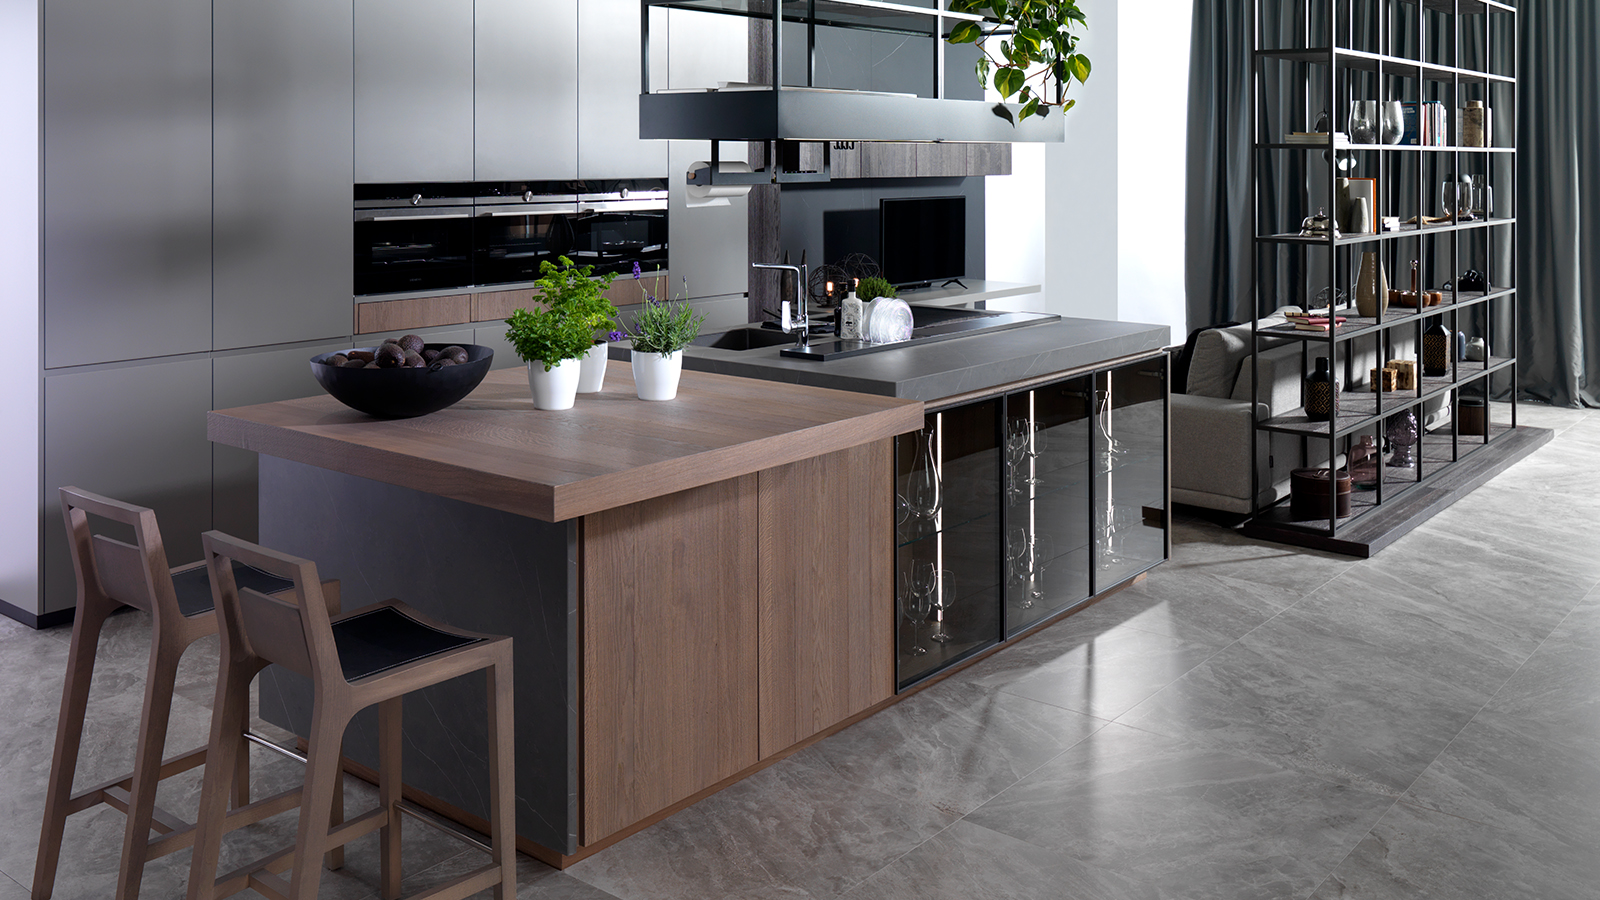 Design a kitchen with a practical and functional island